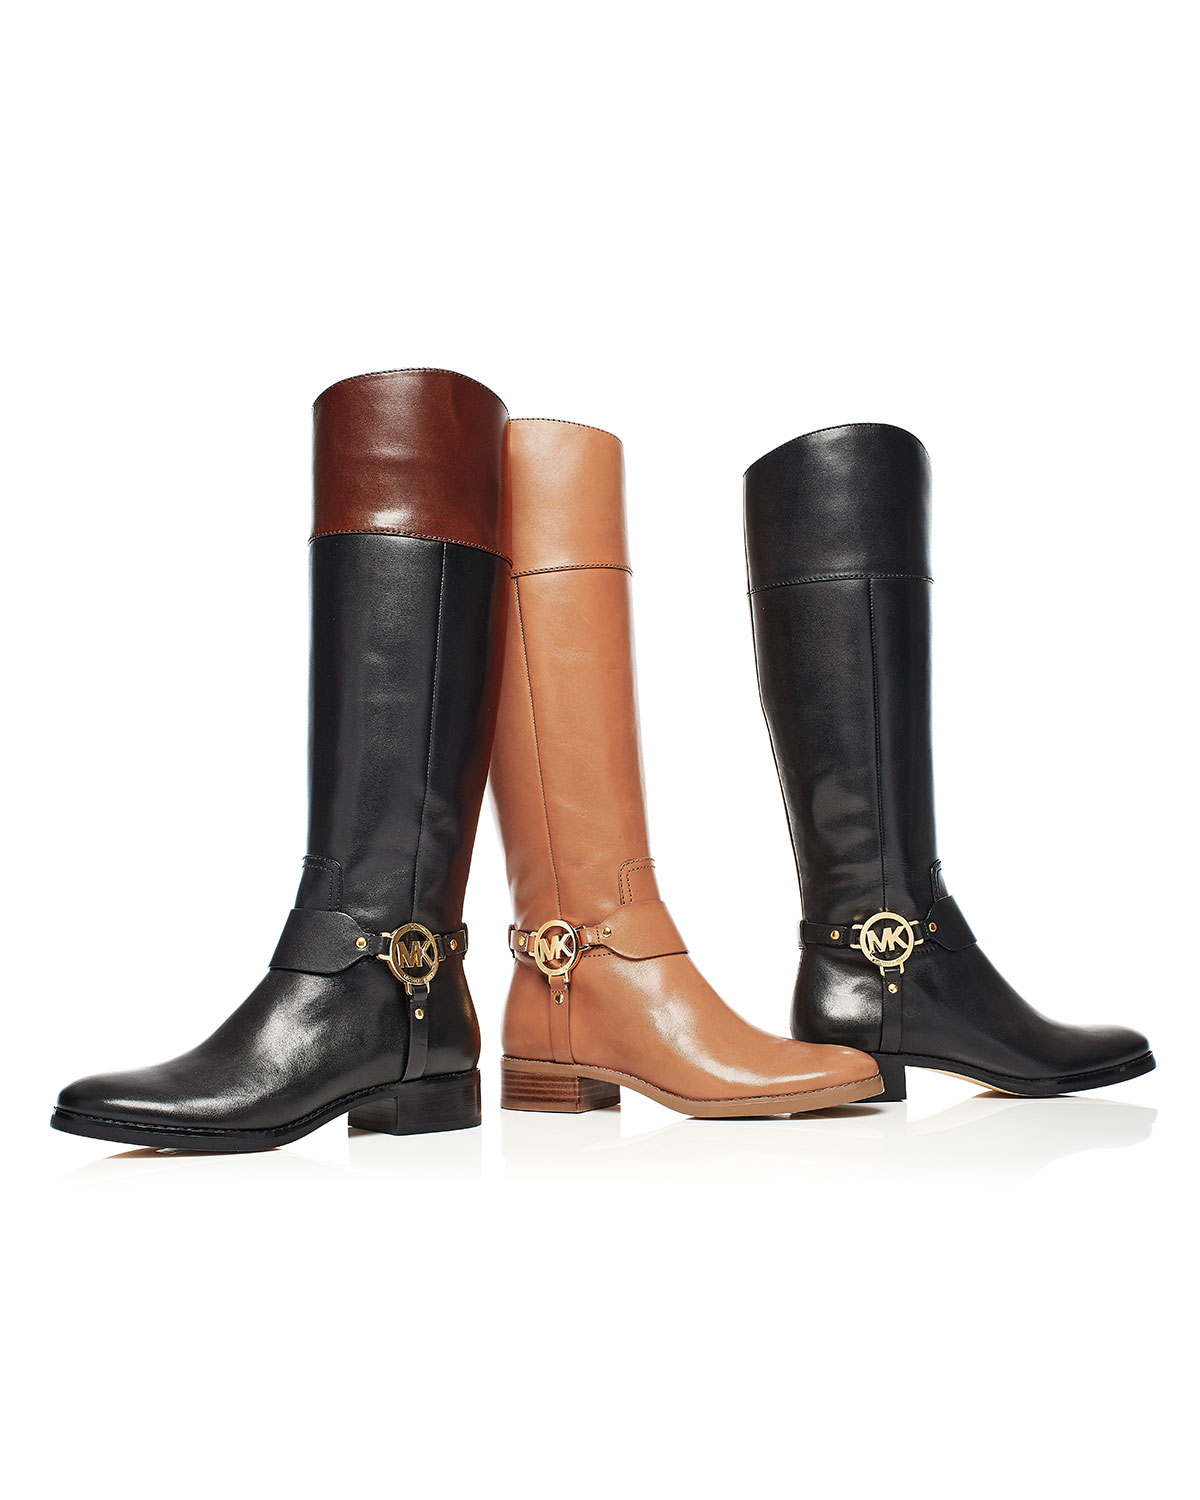 522d59fab7c85 ... Michael michael kors Fulton Harness Leather Riding Boots in ...